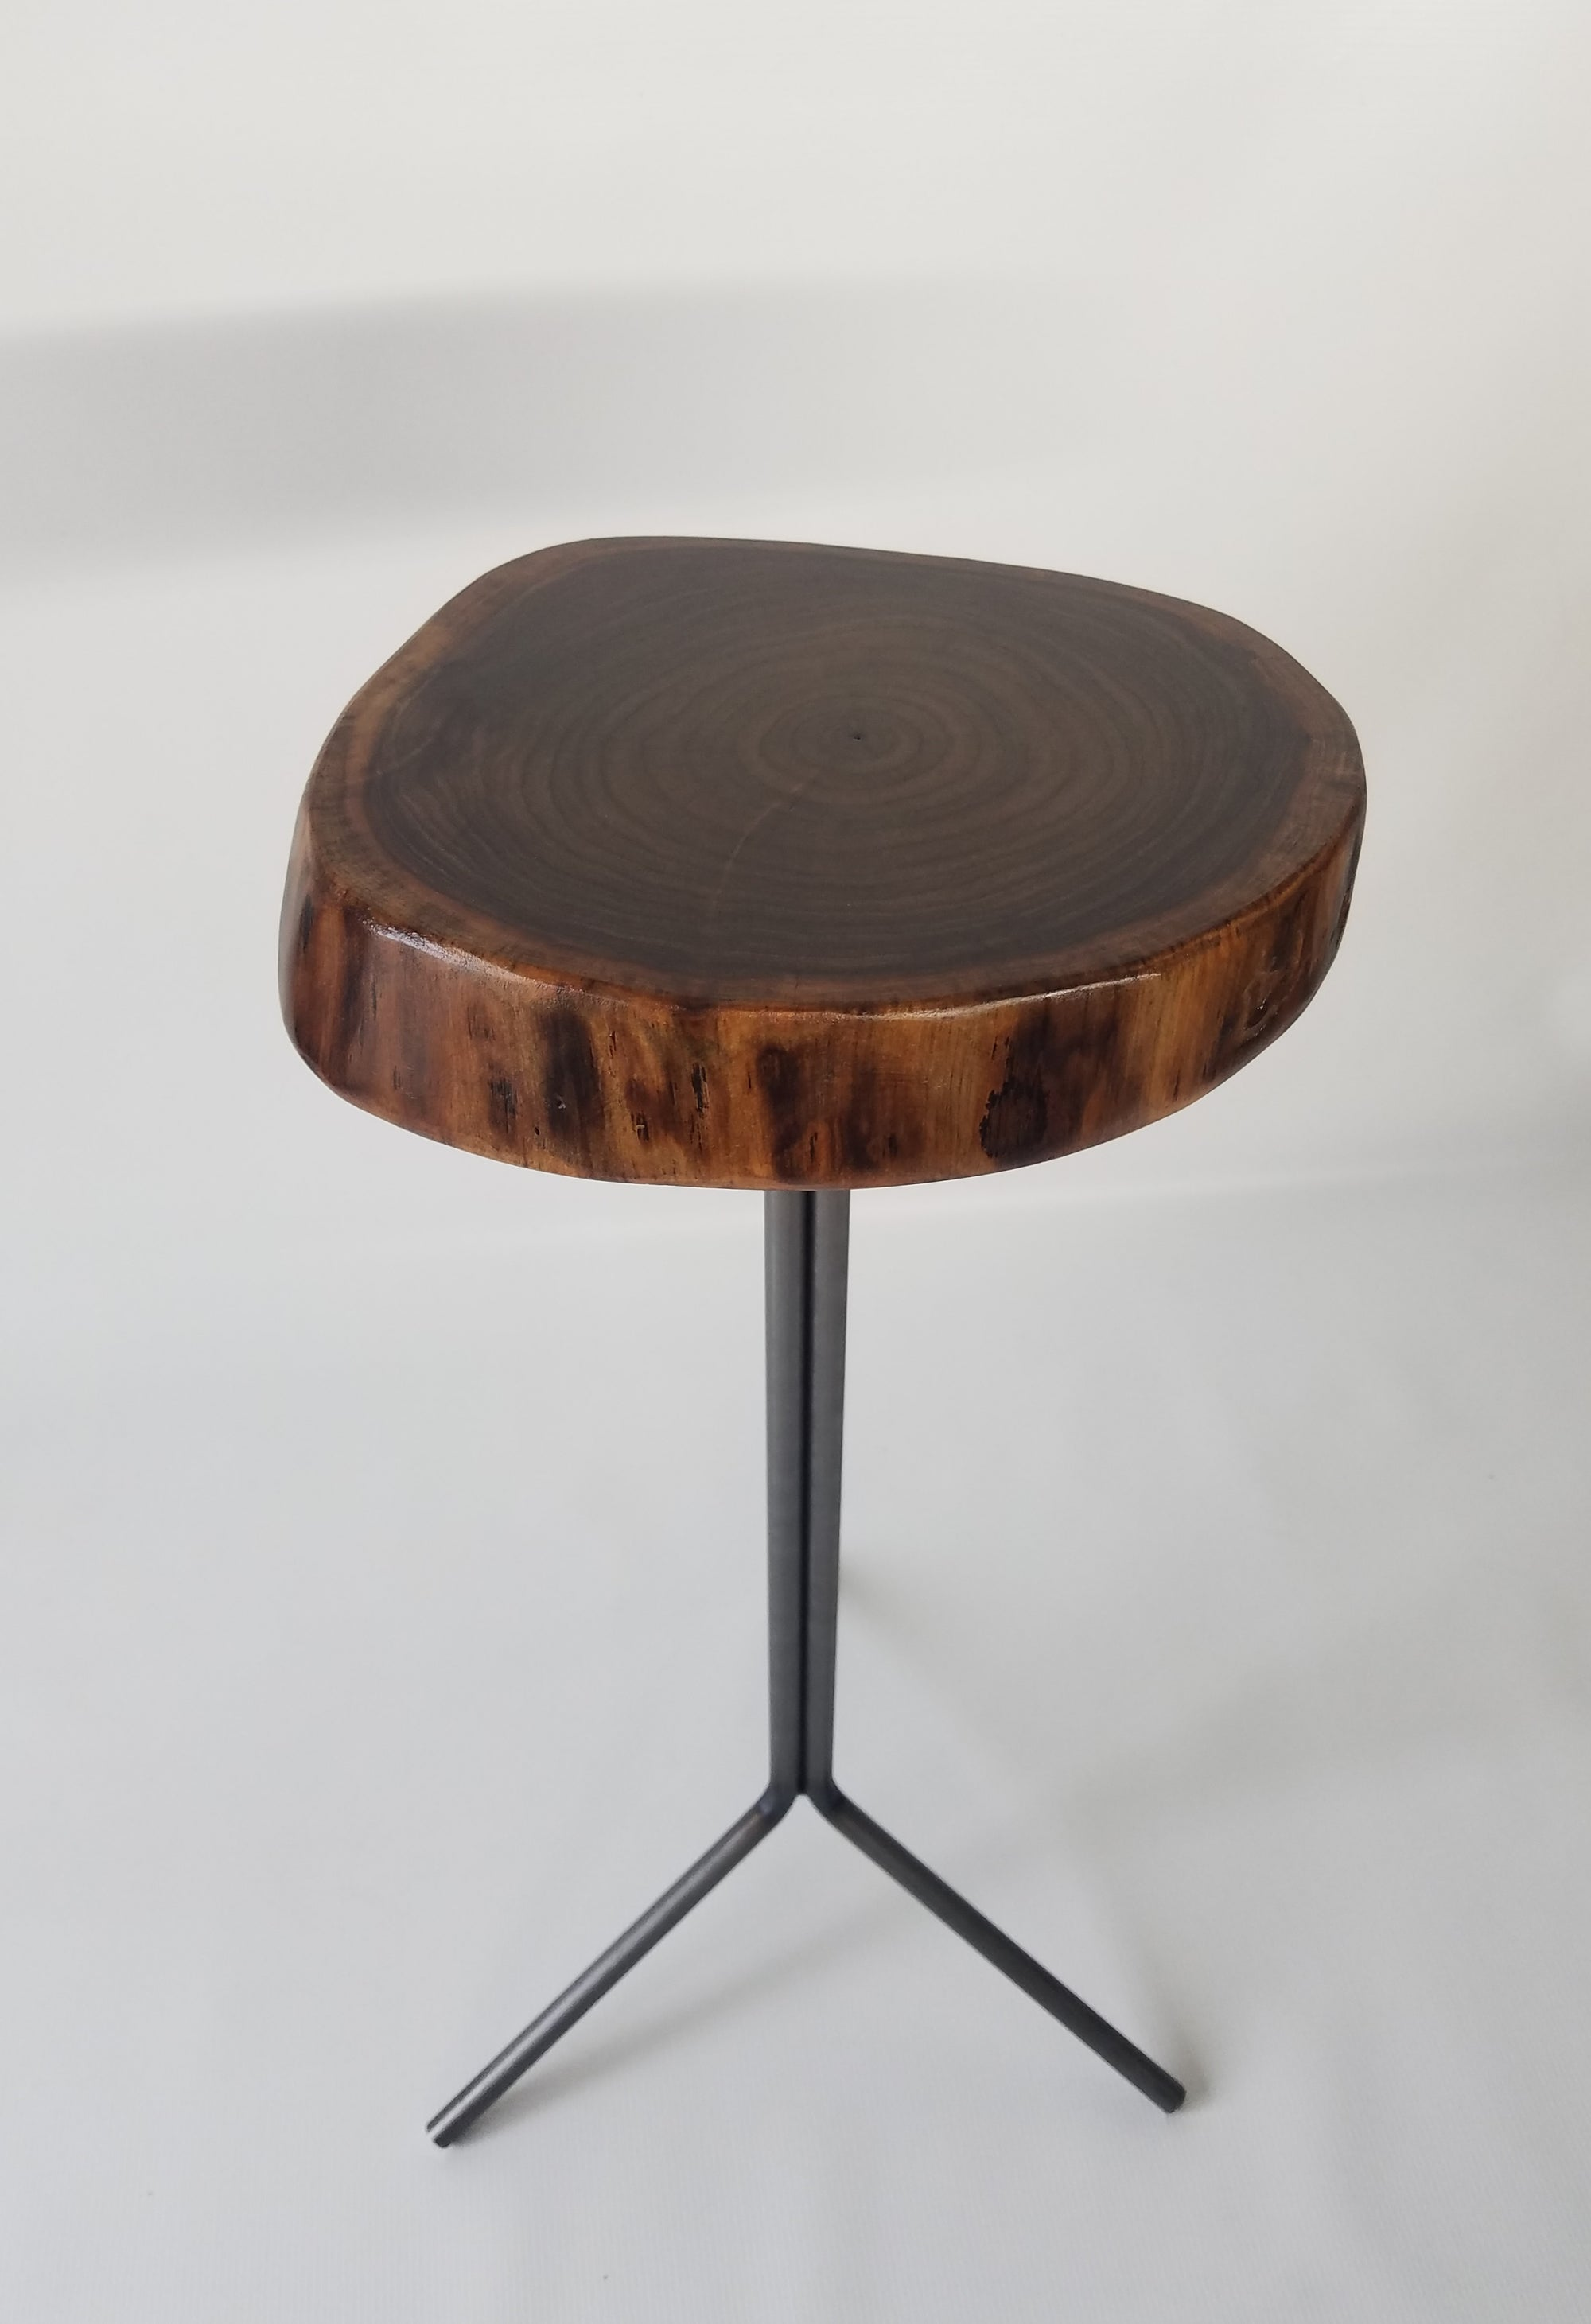 Live Edge End Table- Walnut- Small Side Table- Plant Stand- Tree Slice- Natural Wood- Industrial- Mid Century- Steel Base- Tripod- Log Table